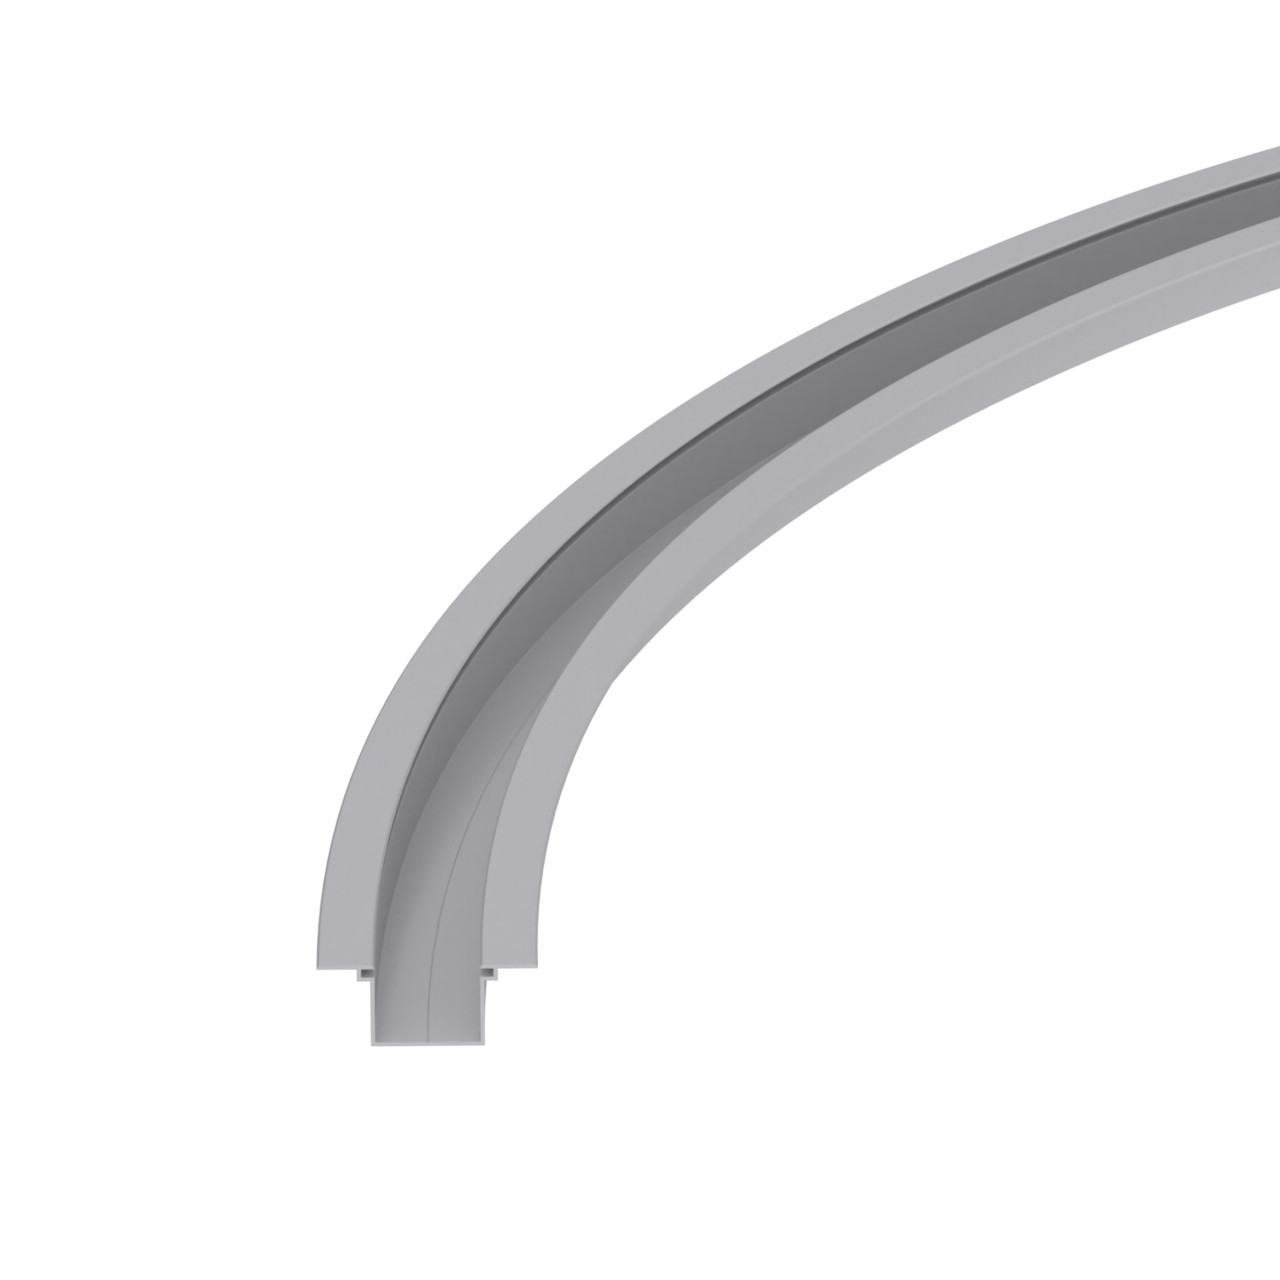 ER34 Curved Led Profile